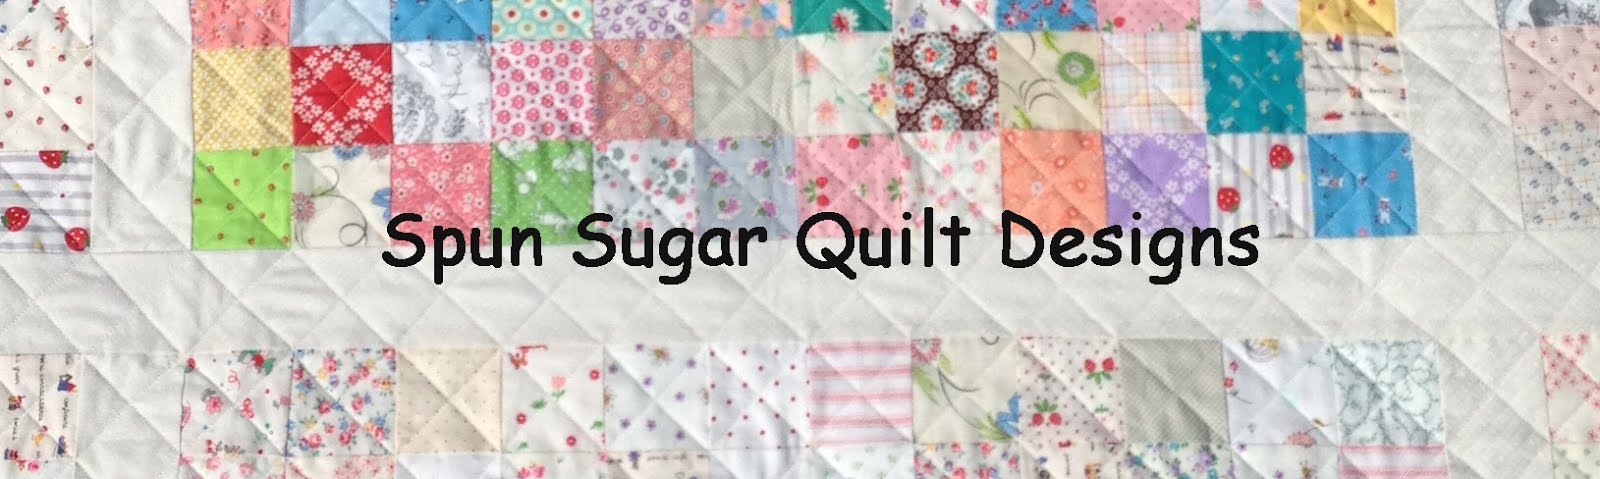 Spun Sugar Quilts